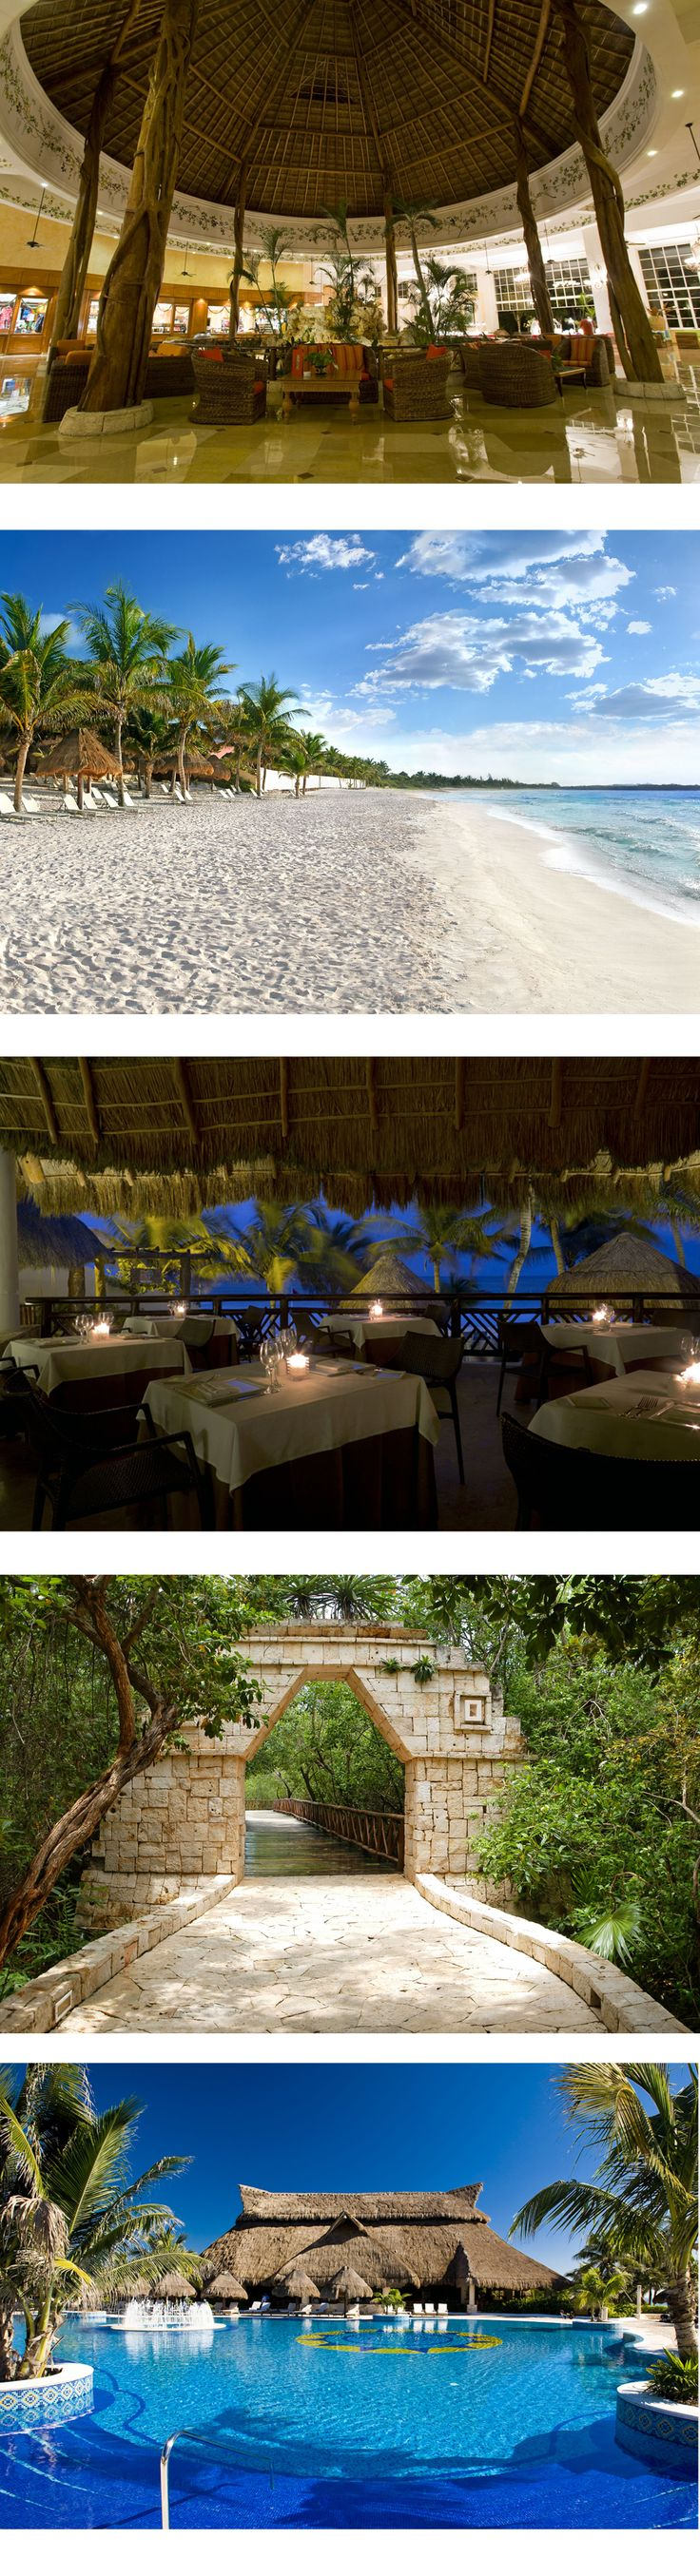 Are you looking for an exclusive, adults-only hotel of your dreams? You've just found it. #CataloniaRoyalTulum #TravelTuesday